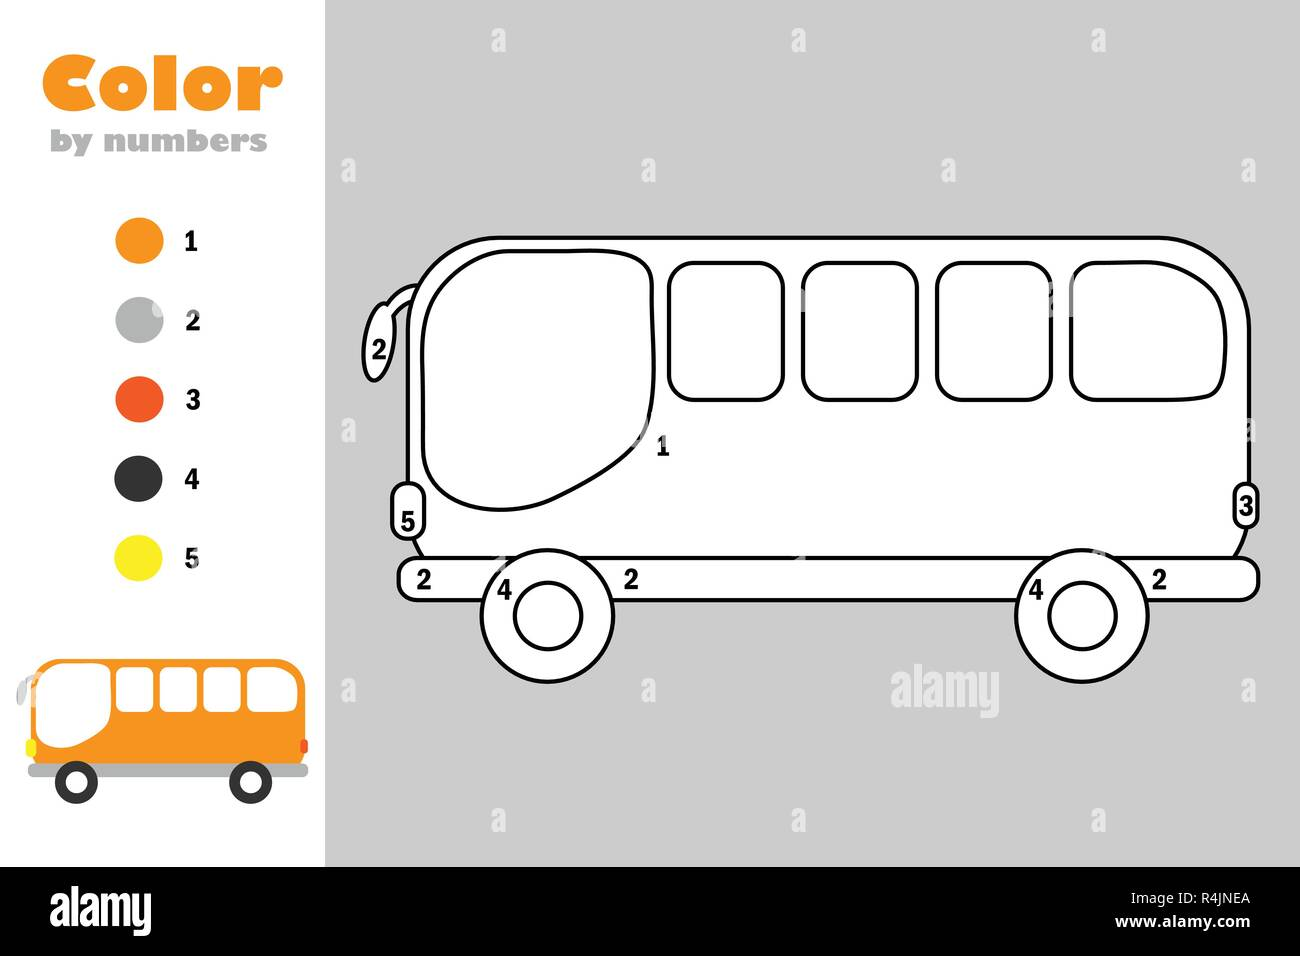 Bus In Cartoon Style Color By Number Education Paper